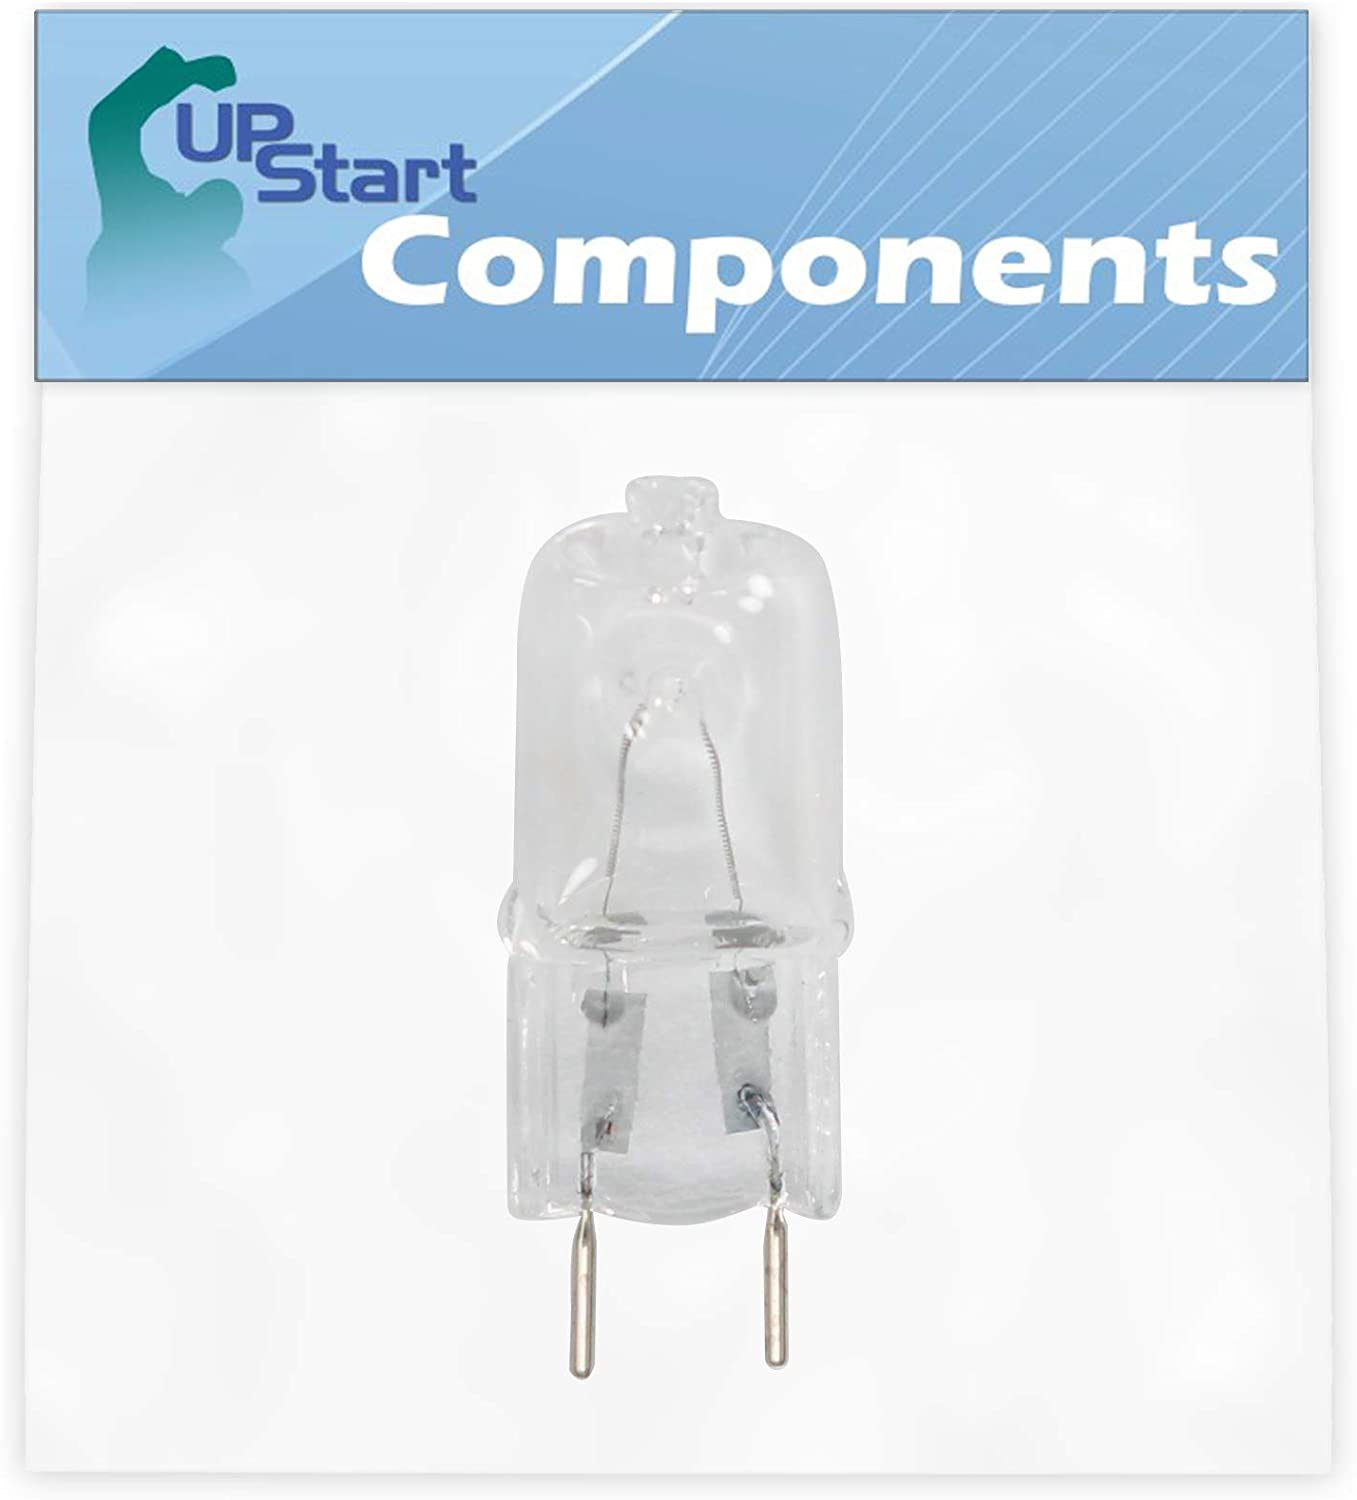 6912A40002E Microwave Oven Light Bulb Replacement for Part Number PS3530398 Microwave Oven - Compatible with LG 6912A40002E Bulb